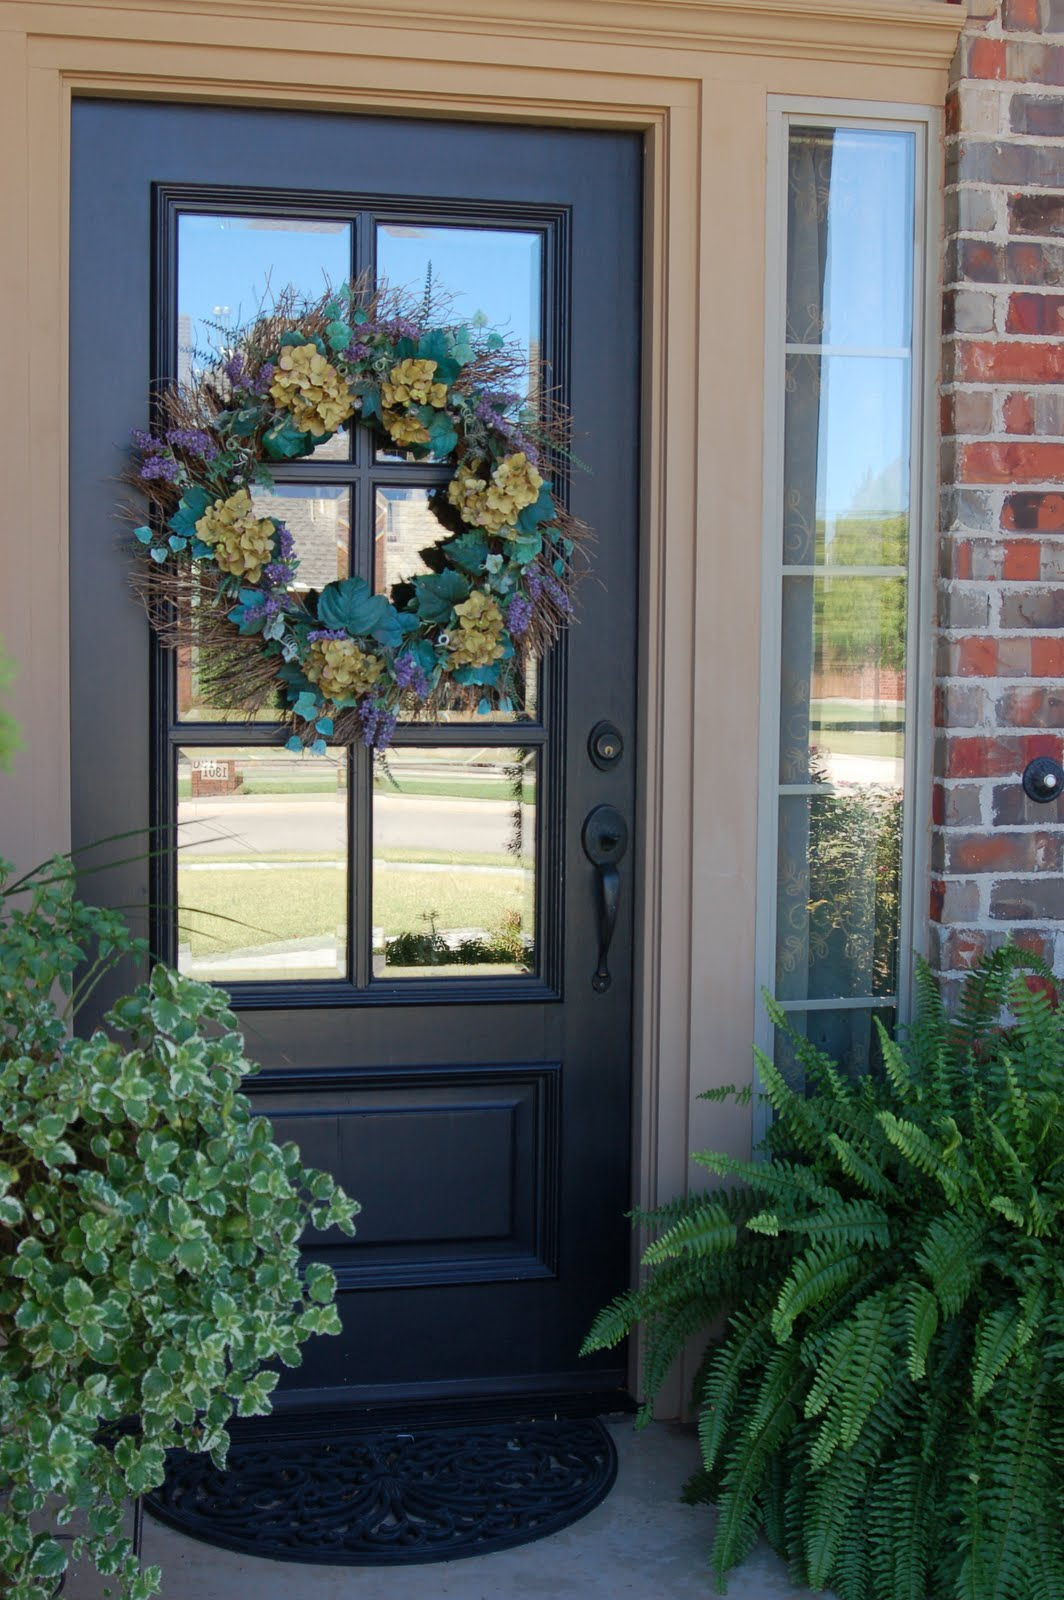 Grey dog designs front door facelift for House front door ideas